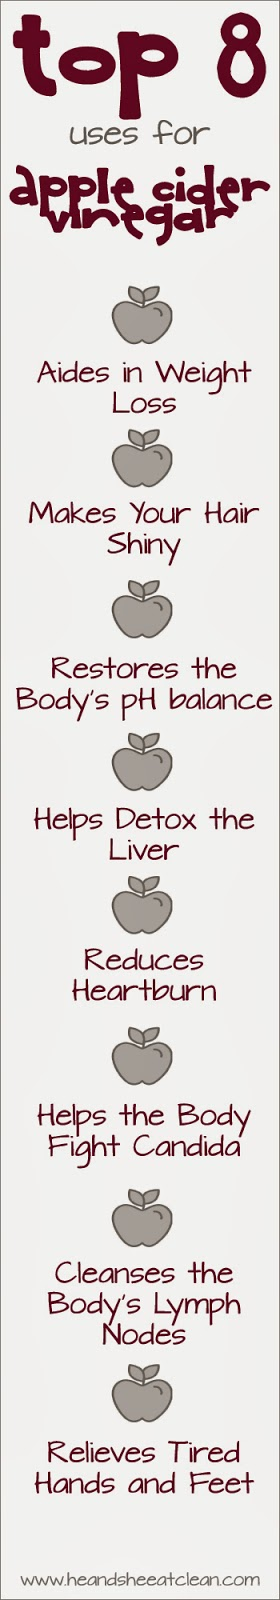 Apple-Cider-Vinegar-top-8-uses-how-to-whats-it-good-for-how-can-i-he-she-eat-clean.jpg